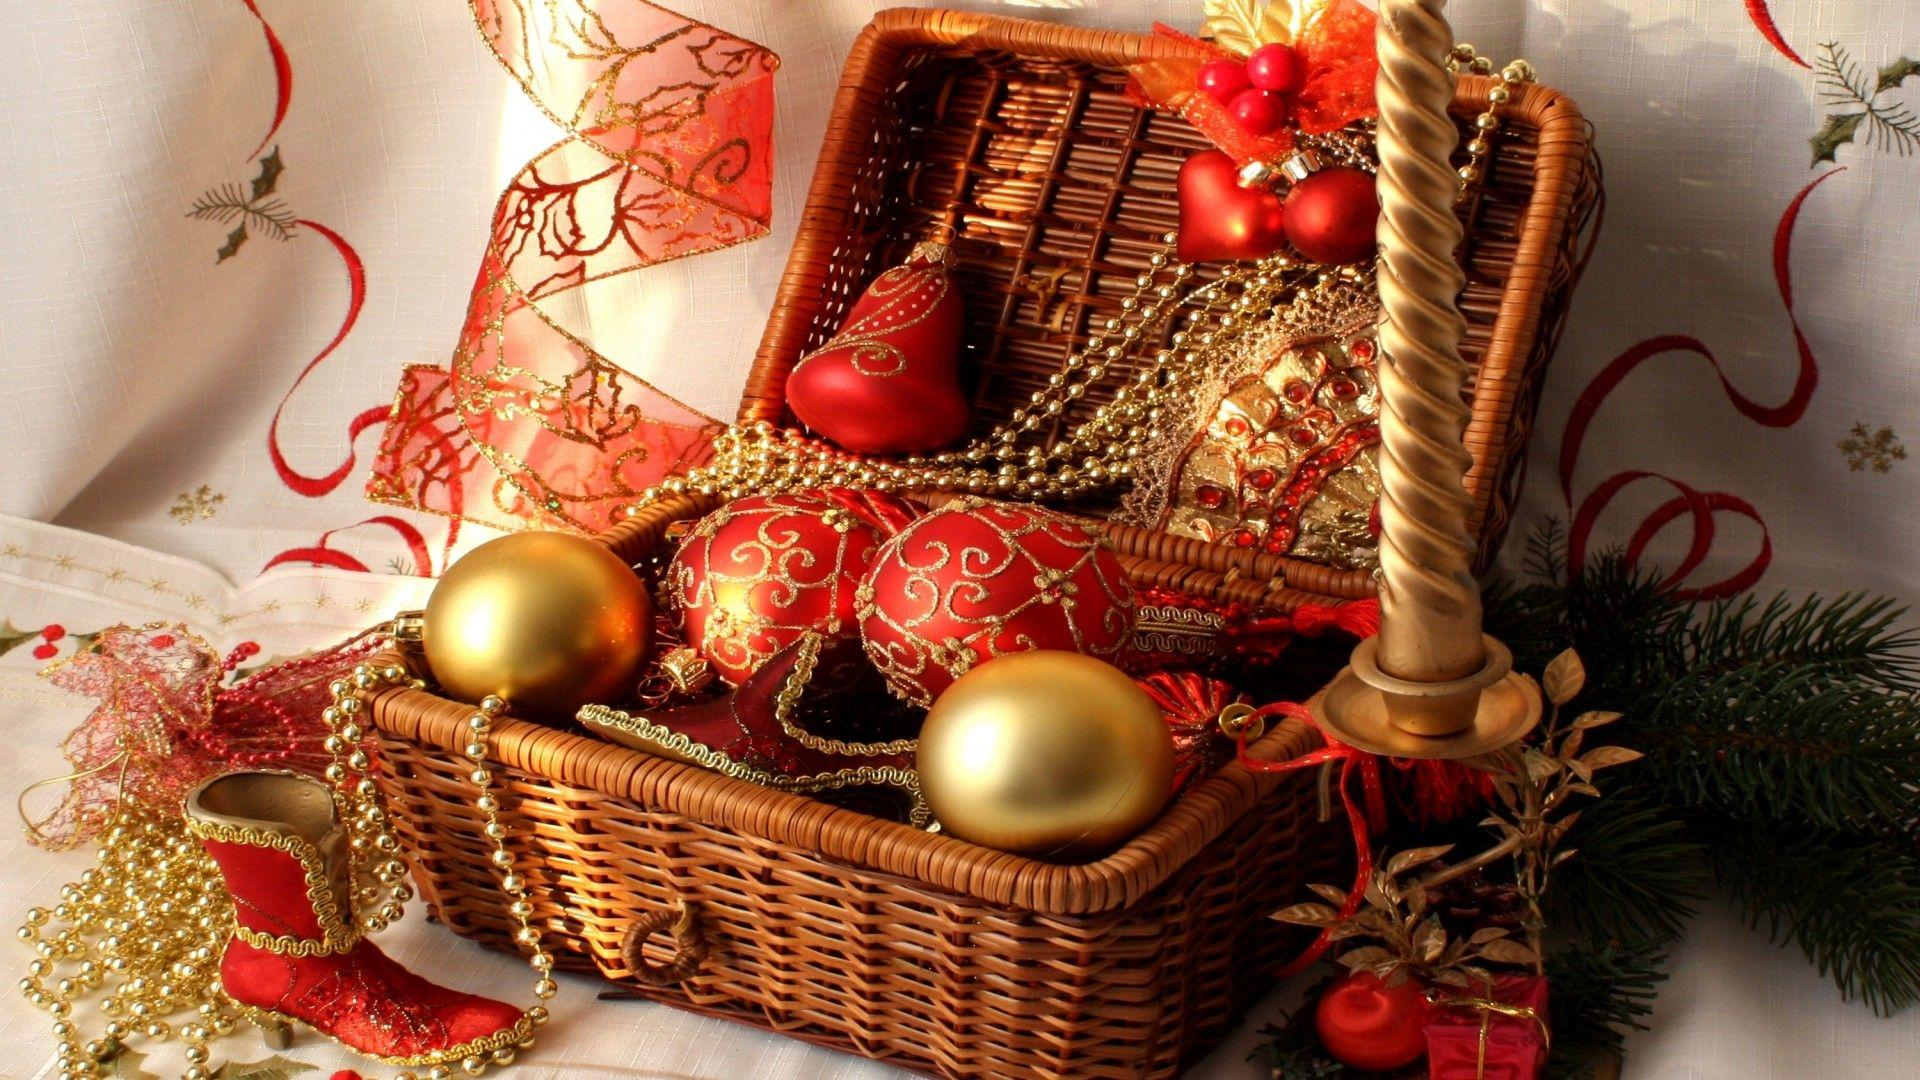 Christmas Decorations Wallpapers HD Wallpapers of Christmas